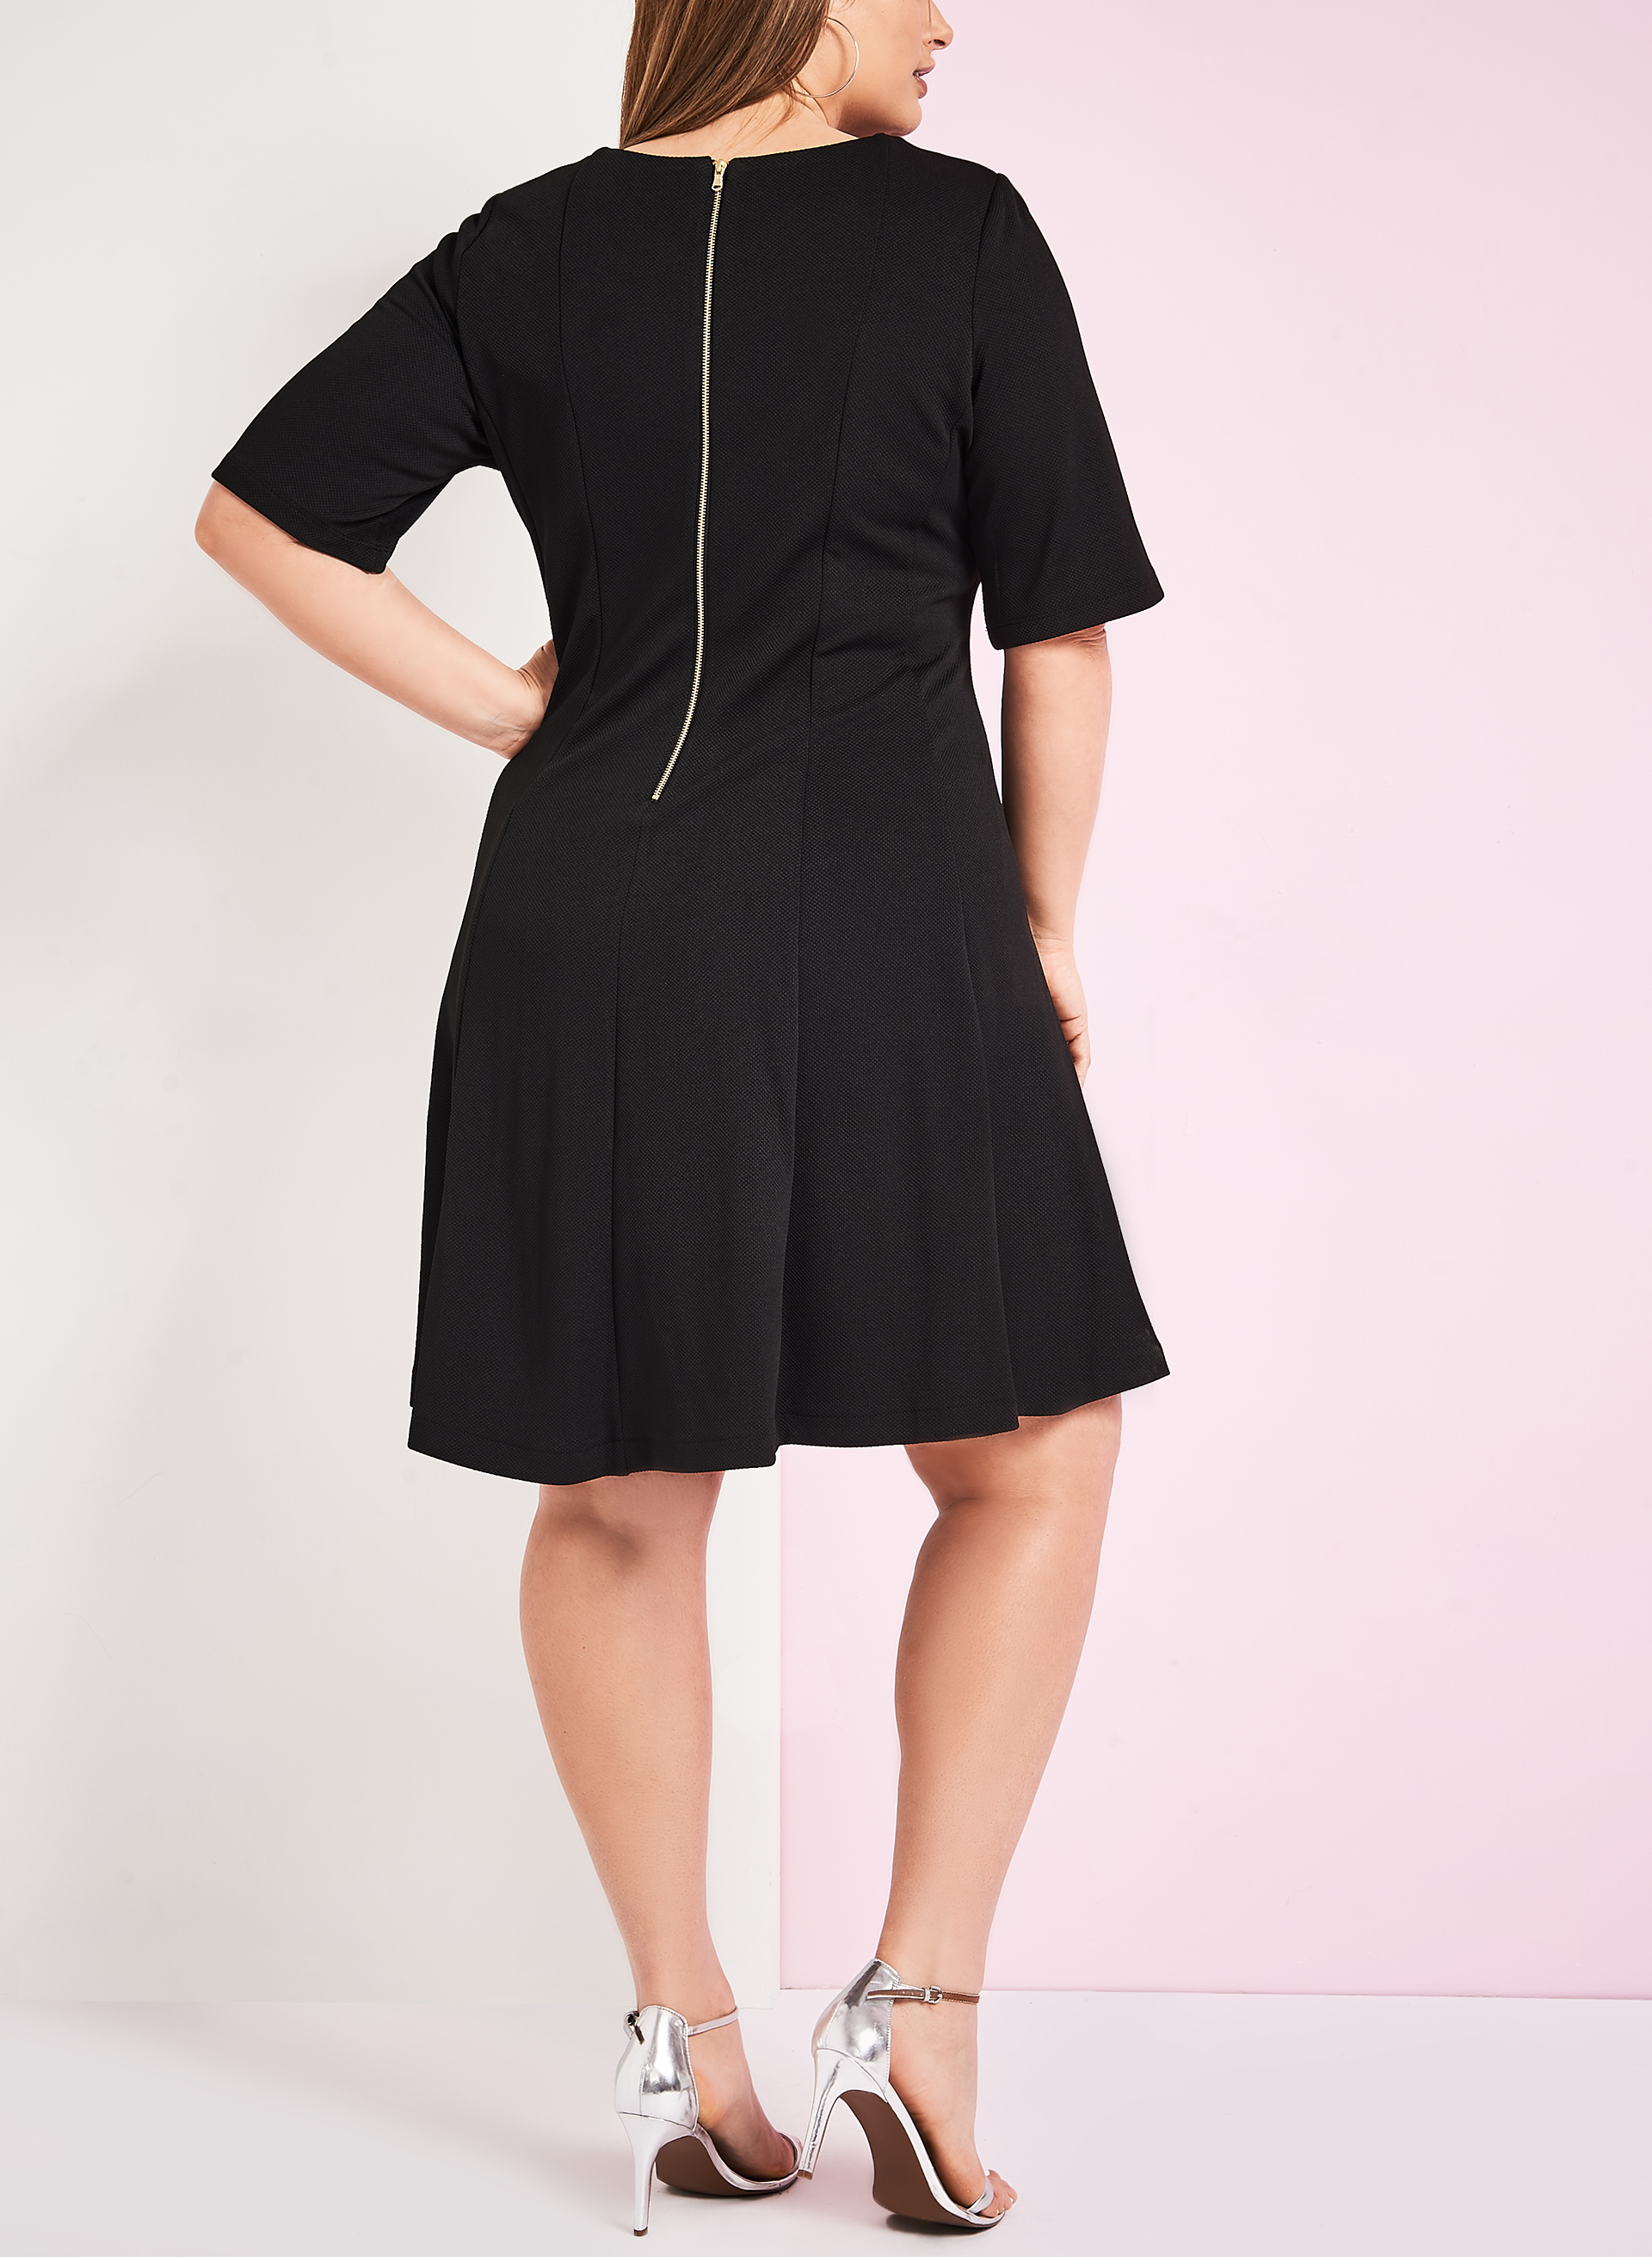 Contrast Piping Fit & Flare Dress, Black, hi-res